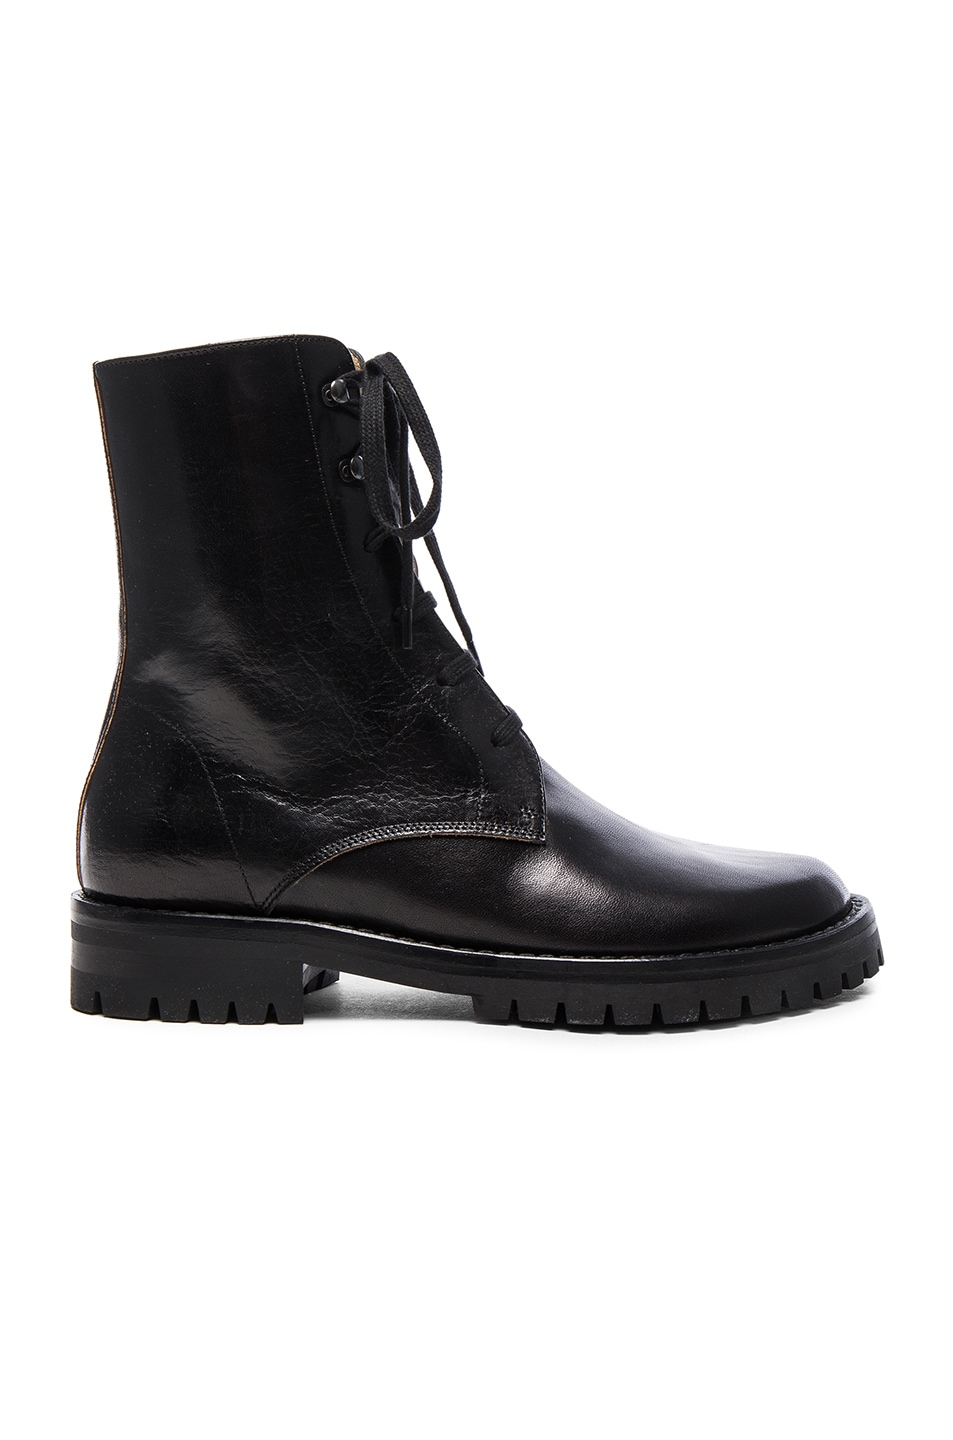 Image 1 of Ann Demeulemeester Leather Combat Boots in Black